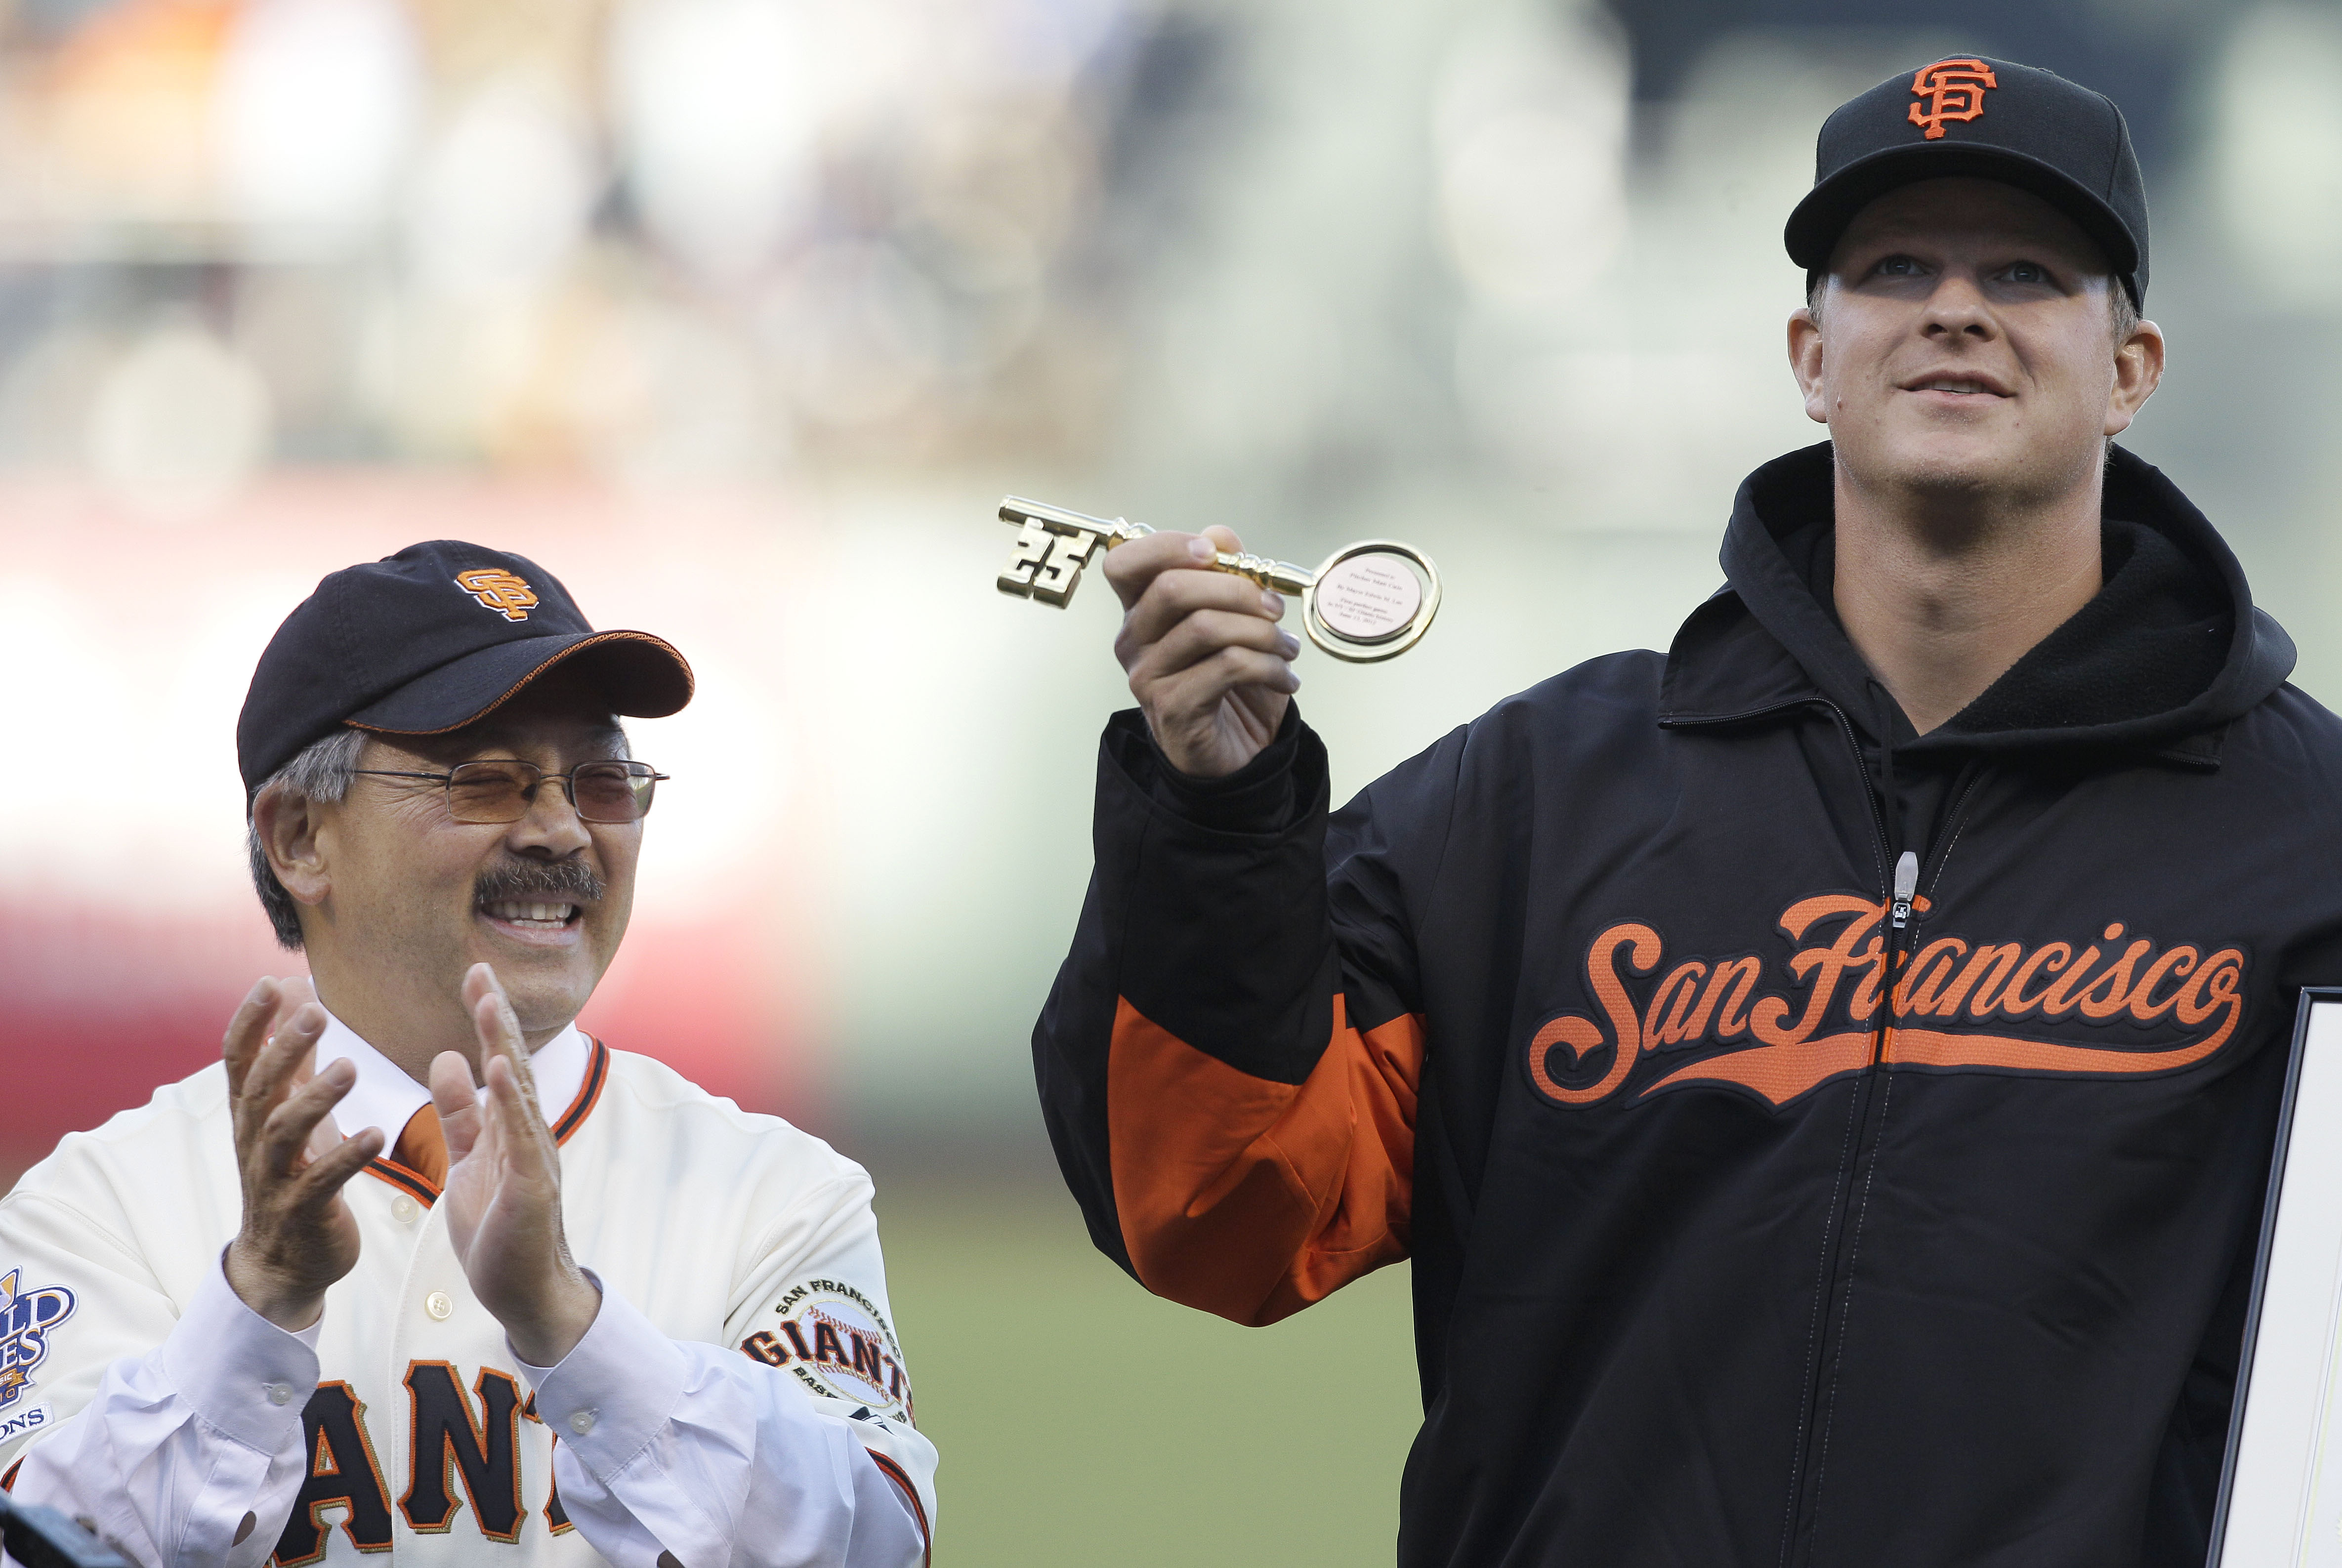 <div class='meta'><div class='origin-logo' data-origin='none'></div><span class='caption-text' data-credit='Jeff Chiu/AP Photo'>Mayor Ed Lee applauds after presenting a key to the city to Giants pitcher Matt Cain in honor of Cain's perfect game against the Houston Astros, during a ceremony, June 26, 2012.</span></div>